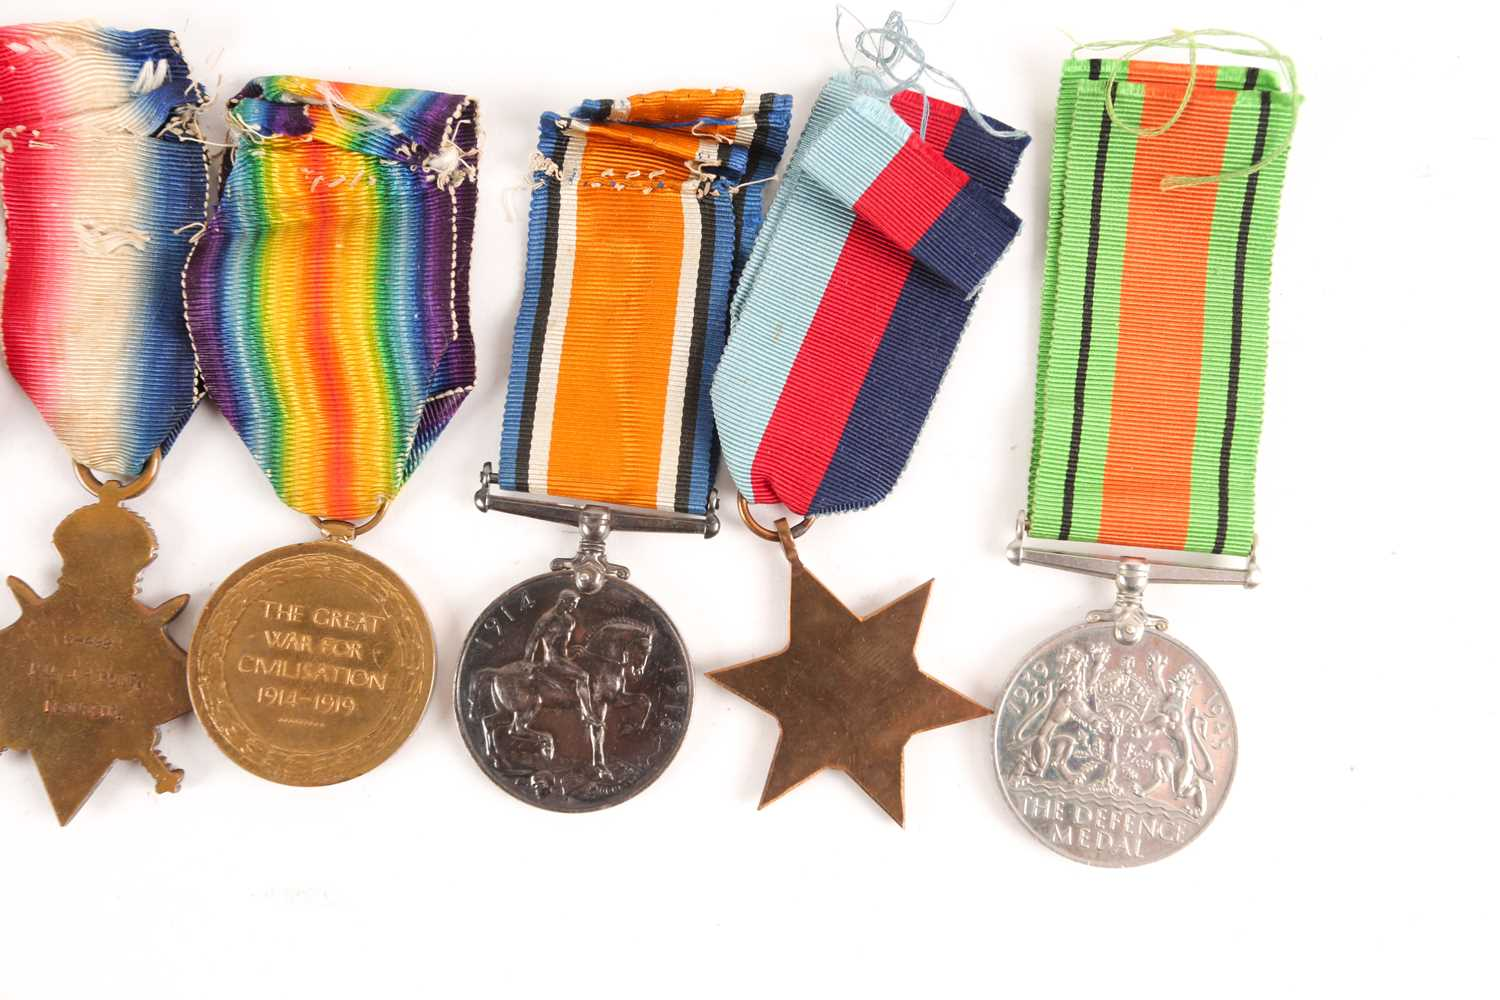 A WWI Campaign, Victory Medal and 1914-1918 Star, to G-4982 PTE. J.R. Pont, Royal Sussex Regiment, - Image 5 of 10